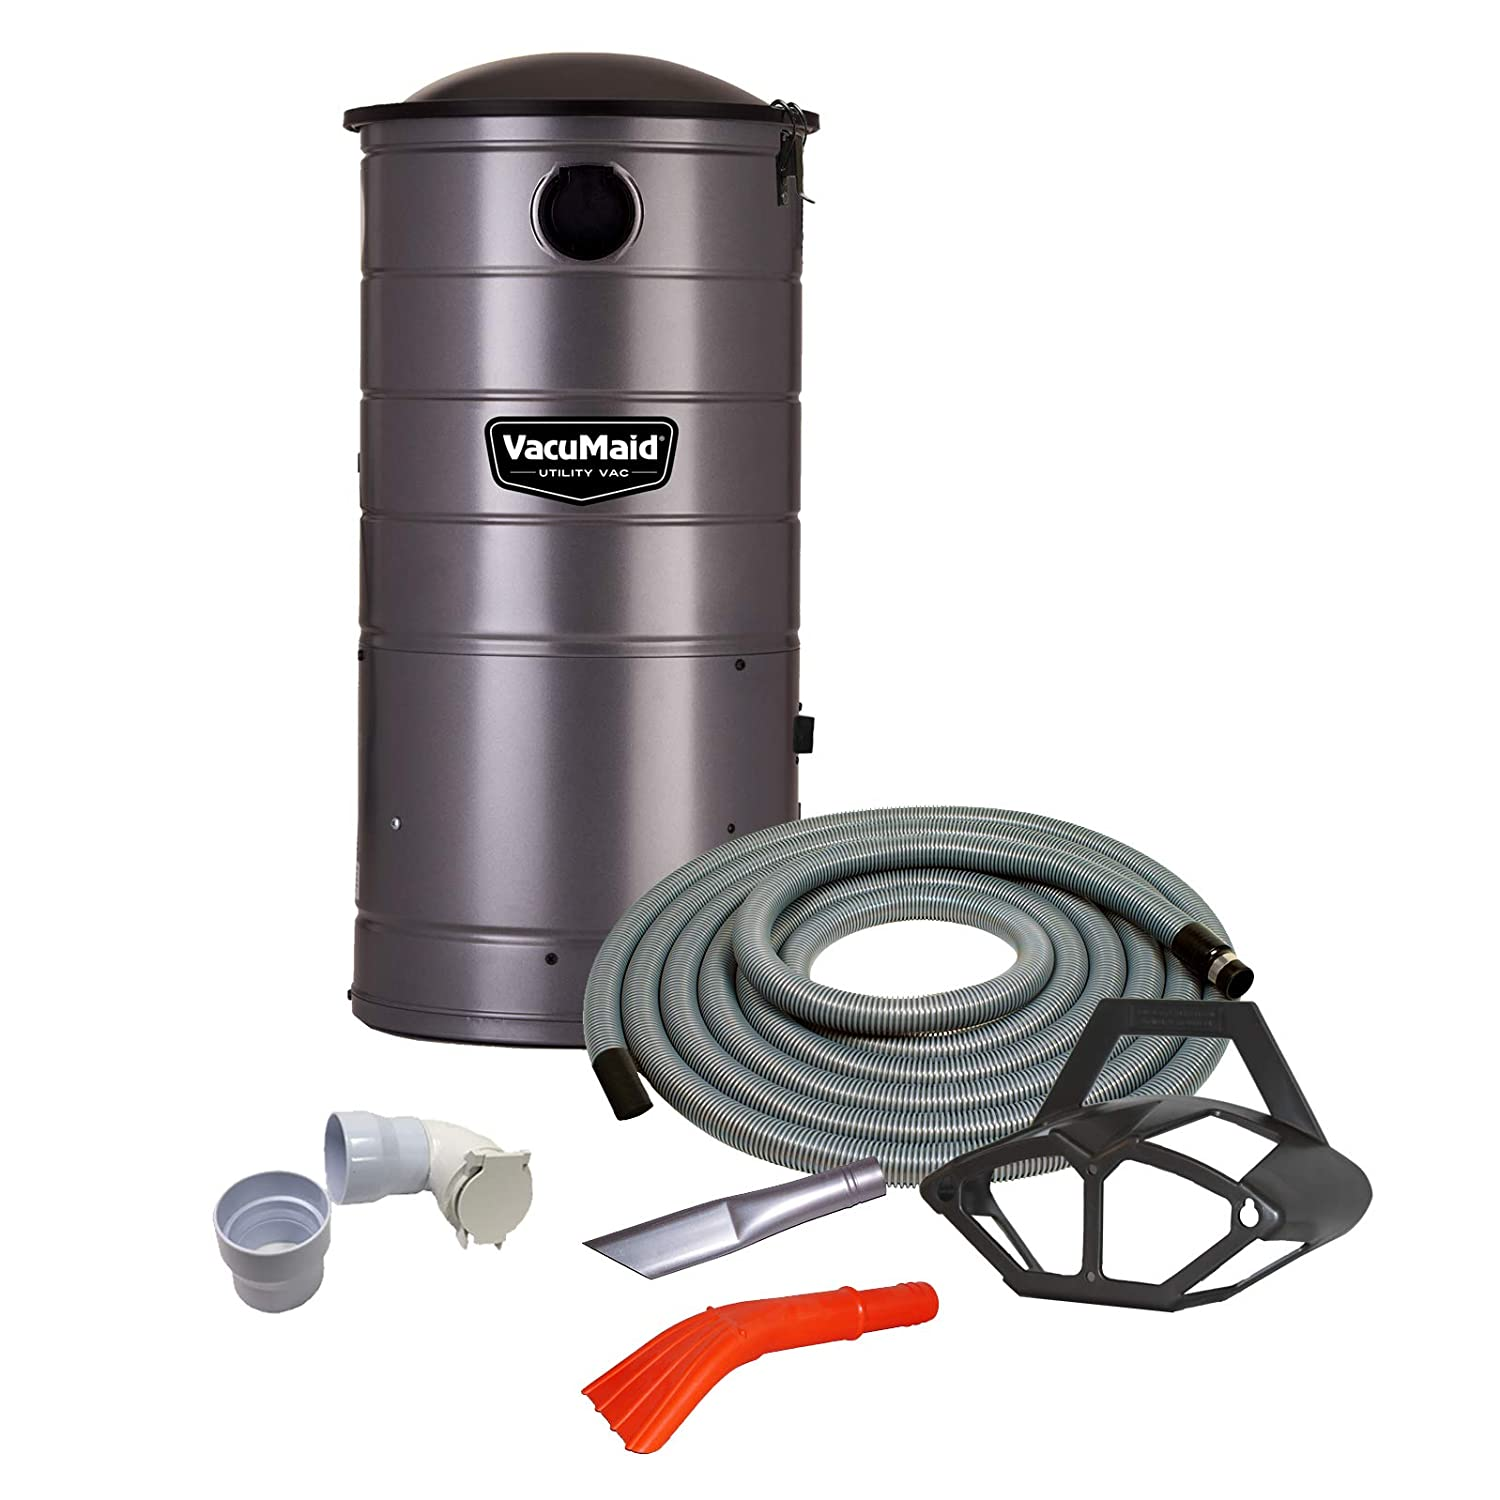 VacuMaid UV150CKP1 Extended Life Wall Mounted Commercial Vacuum with 50 ft. Car Care Kit Unit and Kit Plus 1 Inlet